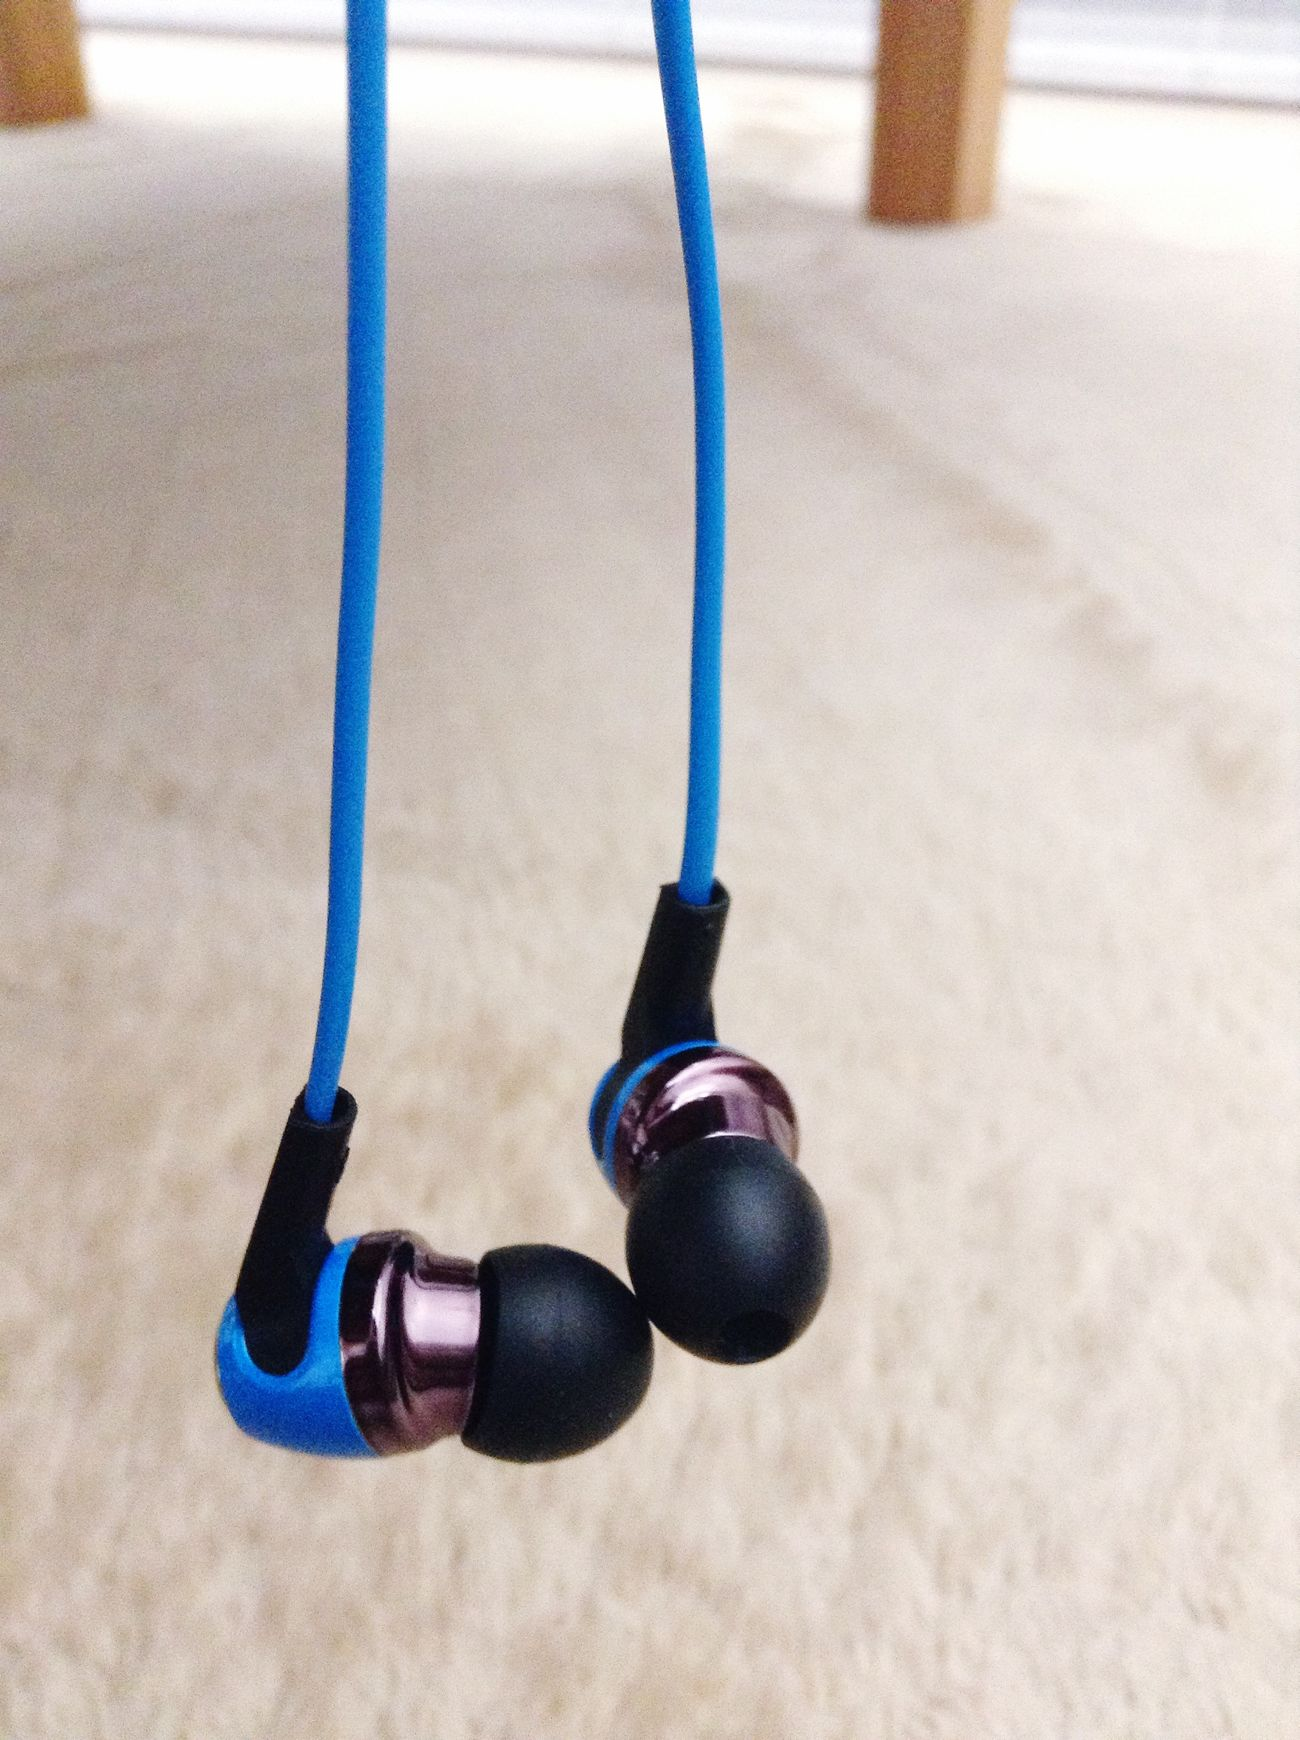 Earphones Earphone EarPhonePlug